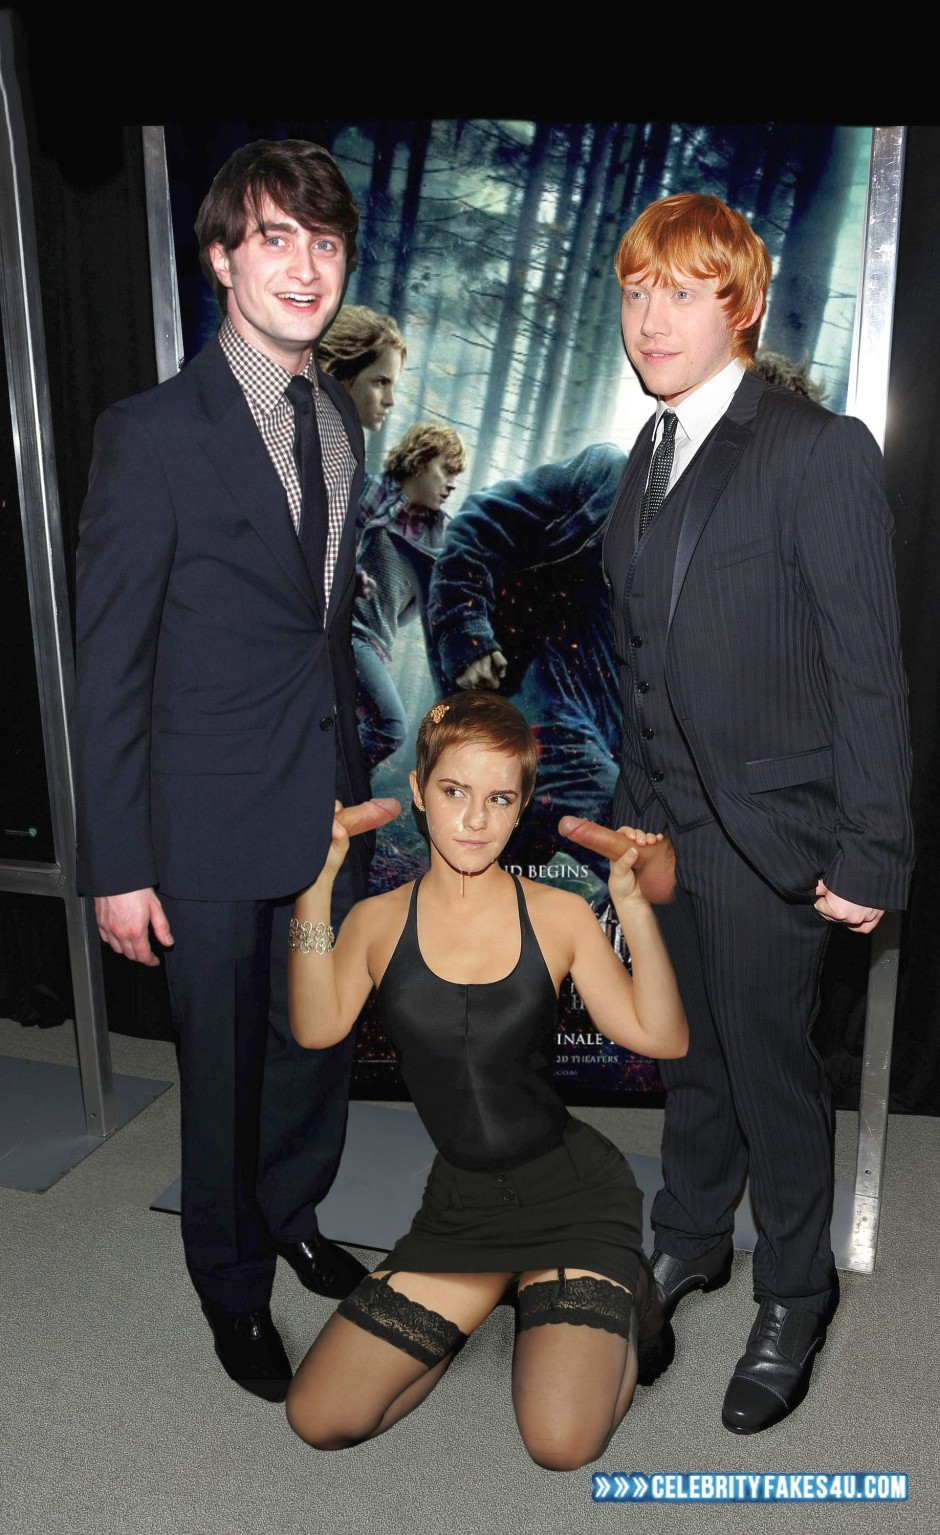 potter fakes pictures harry emma watson